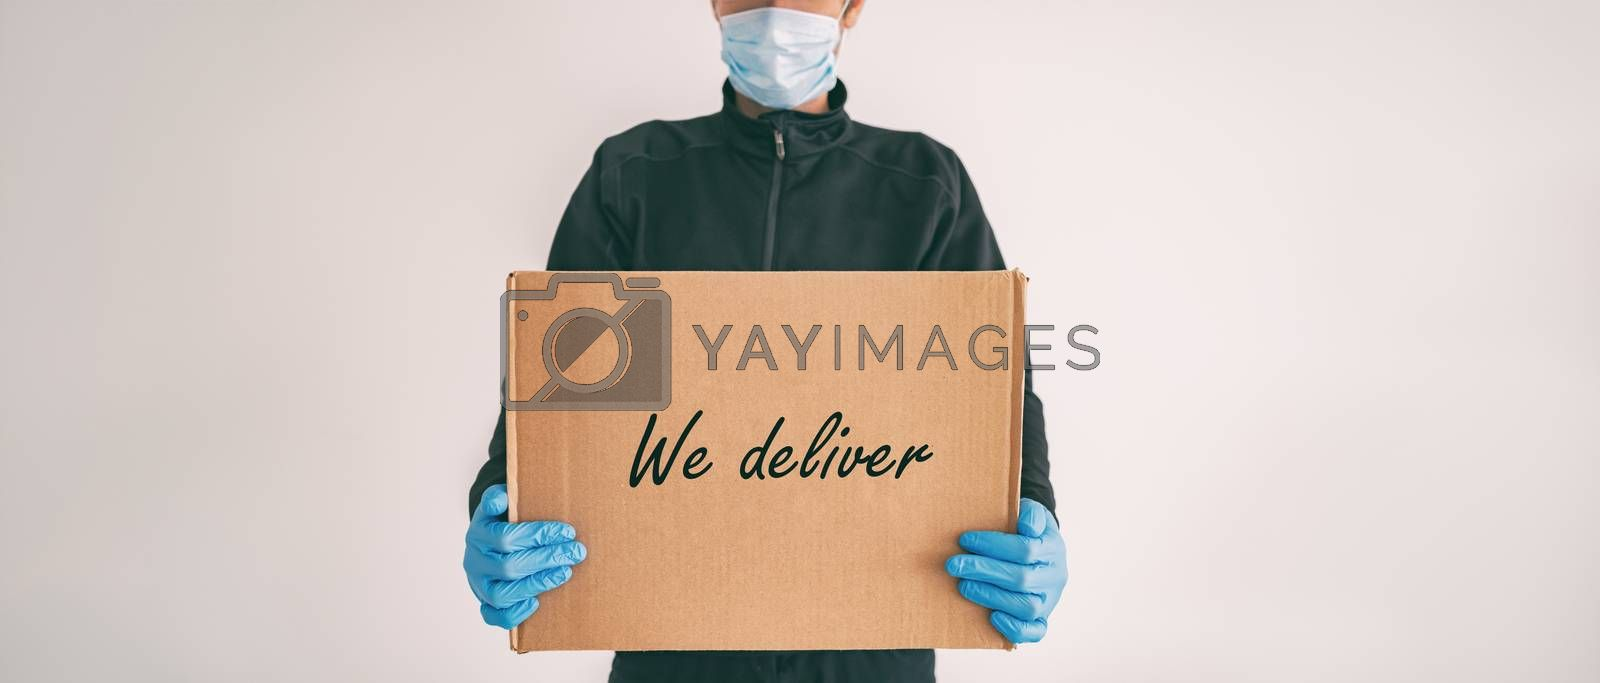 Home delivery WE DELIVER sign on cardboard box banner. Food grocery package online shopping man delivering with gloves and mask for COVID-19 coronavirus social distancing carrying at door by Maridav